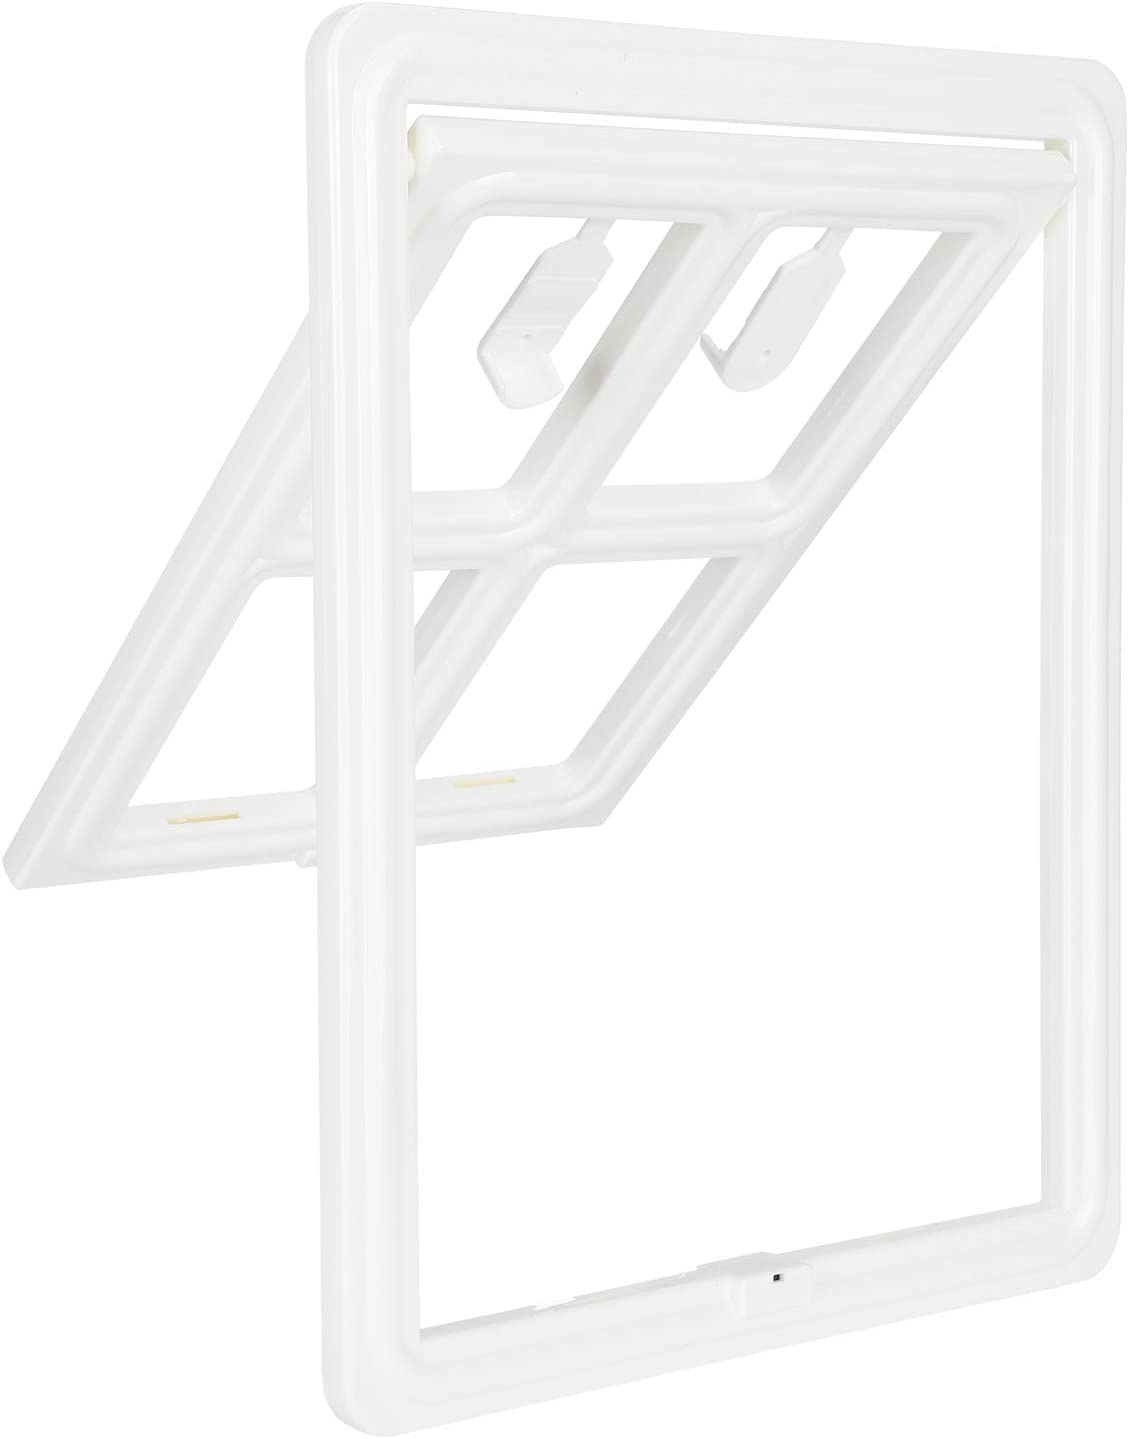 SALUTUYA Plastic Cat Removable Door Mail Super beauty product restock quality top! order cheap Buckle Magnets with and Four